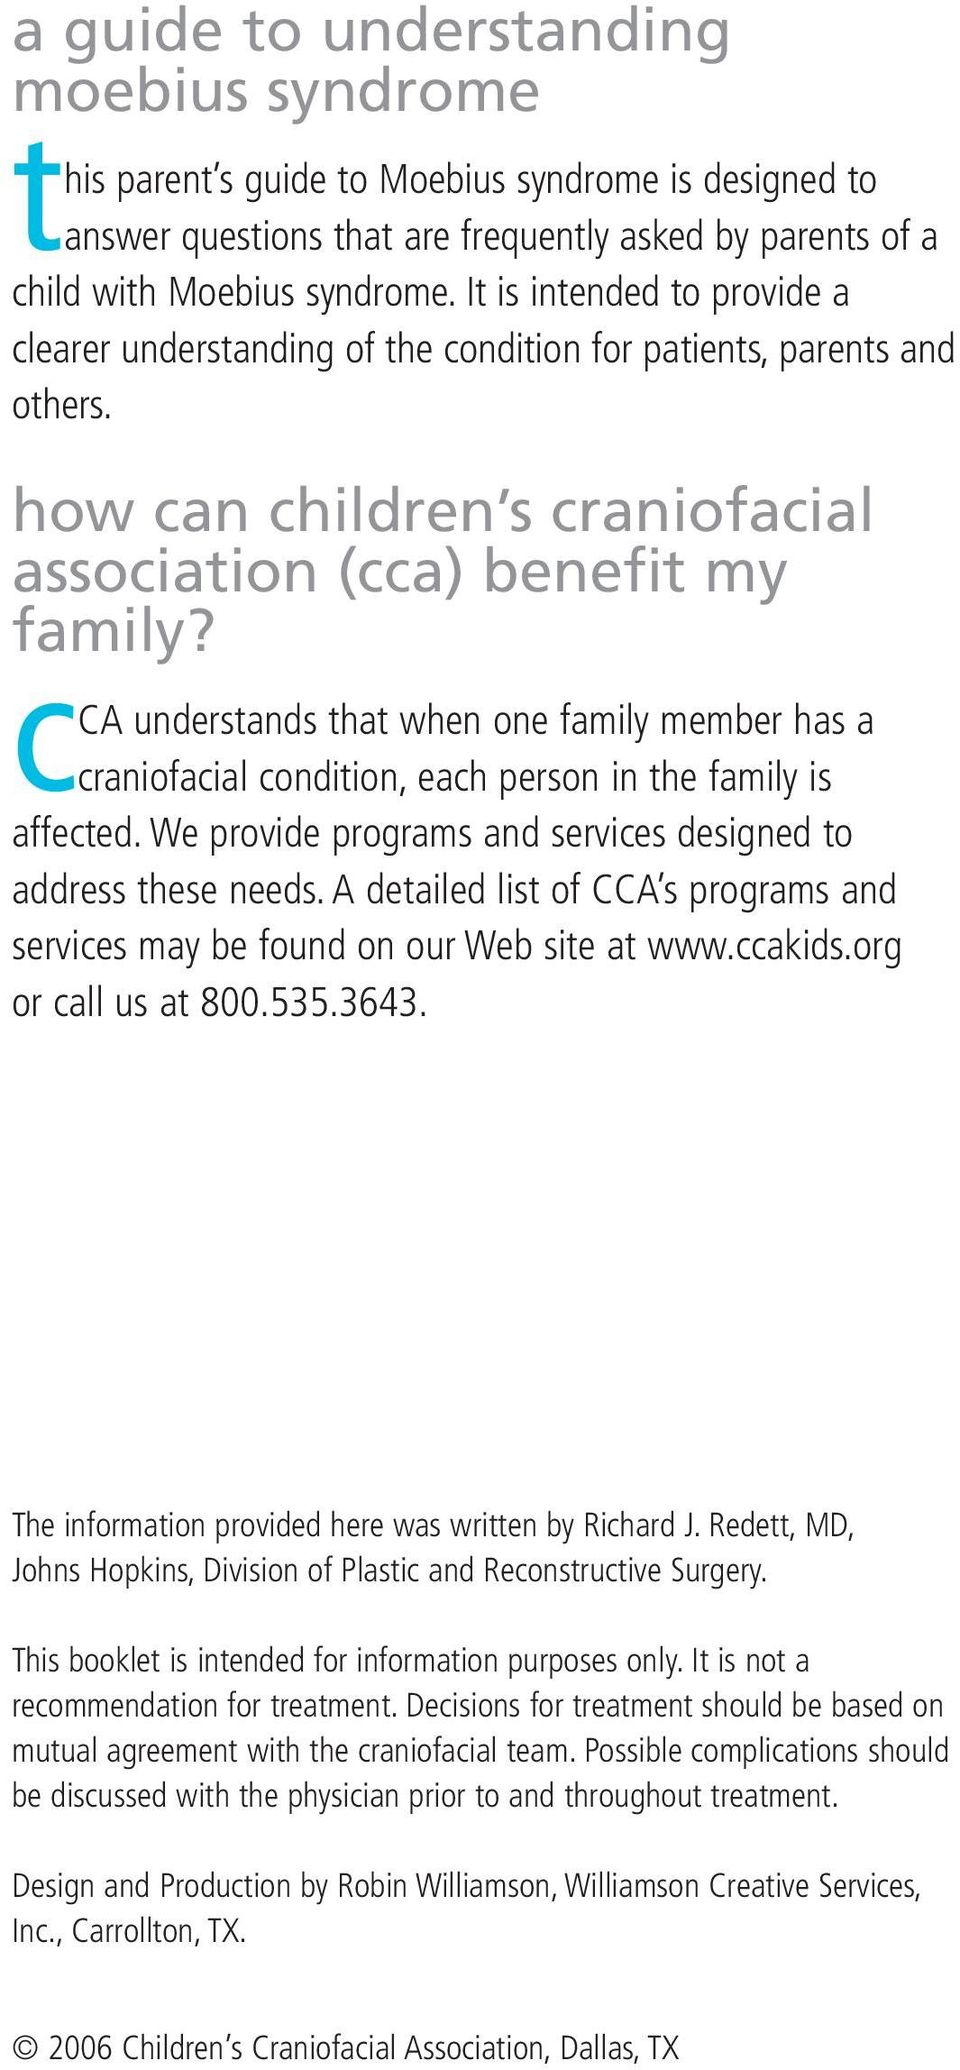 cca understands that when one family member has a craniofacial condition, each person in the family is affected. We provide programs and services designed to address these needs.